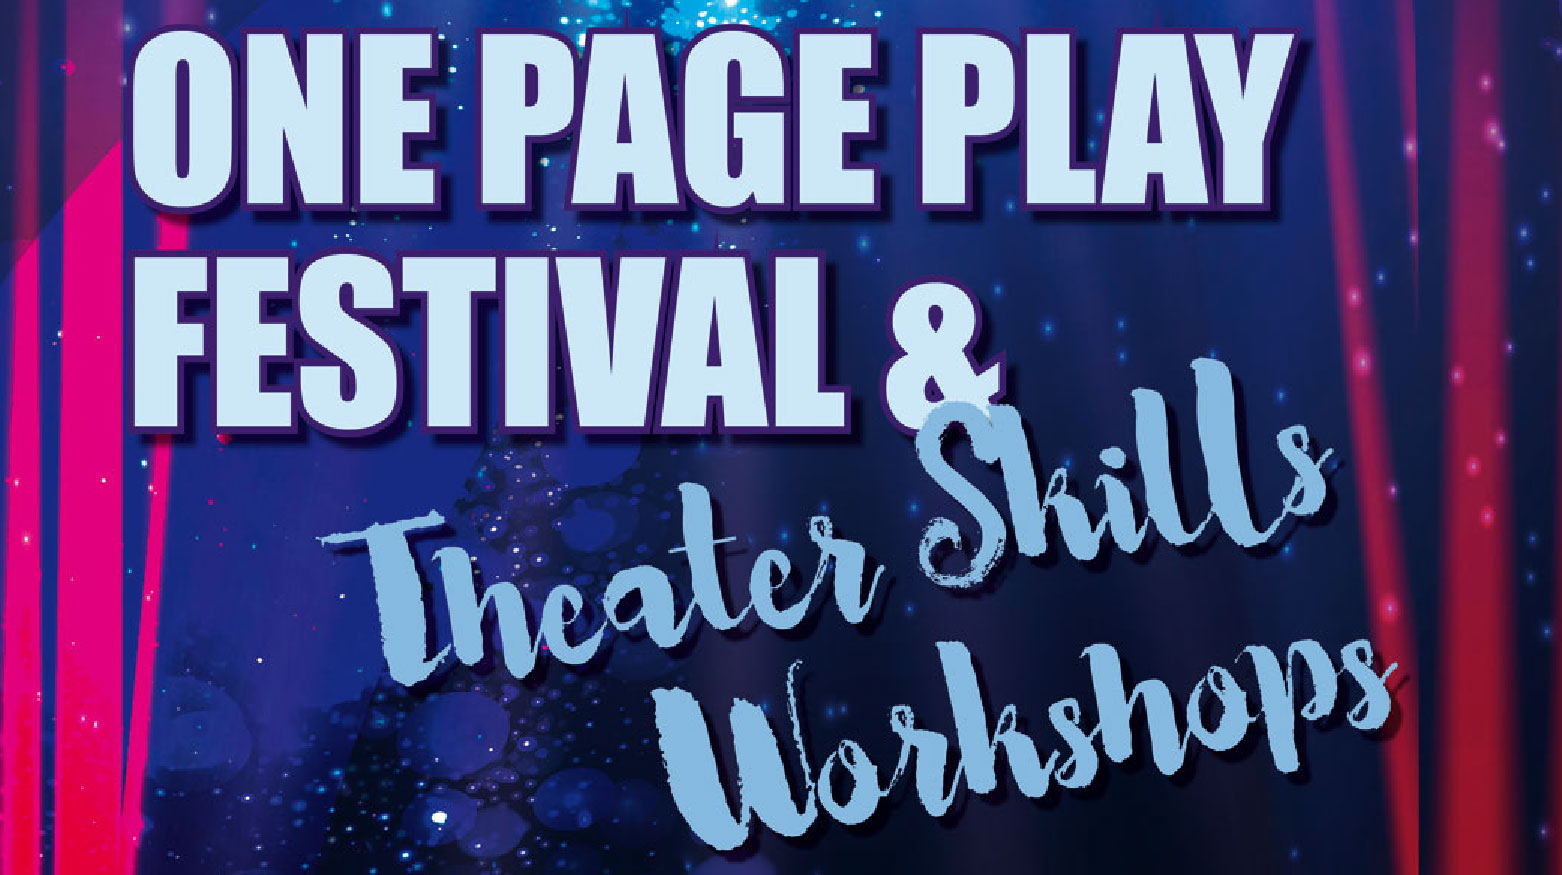 One Page Play Festival and Theatre Skills Workshops